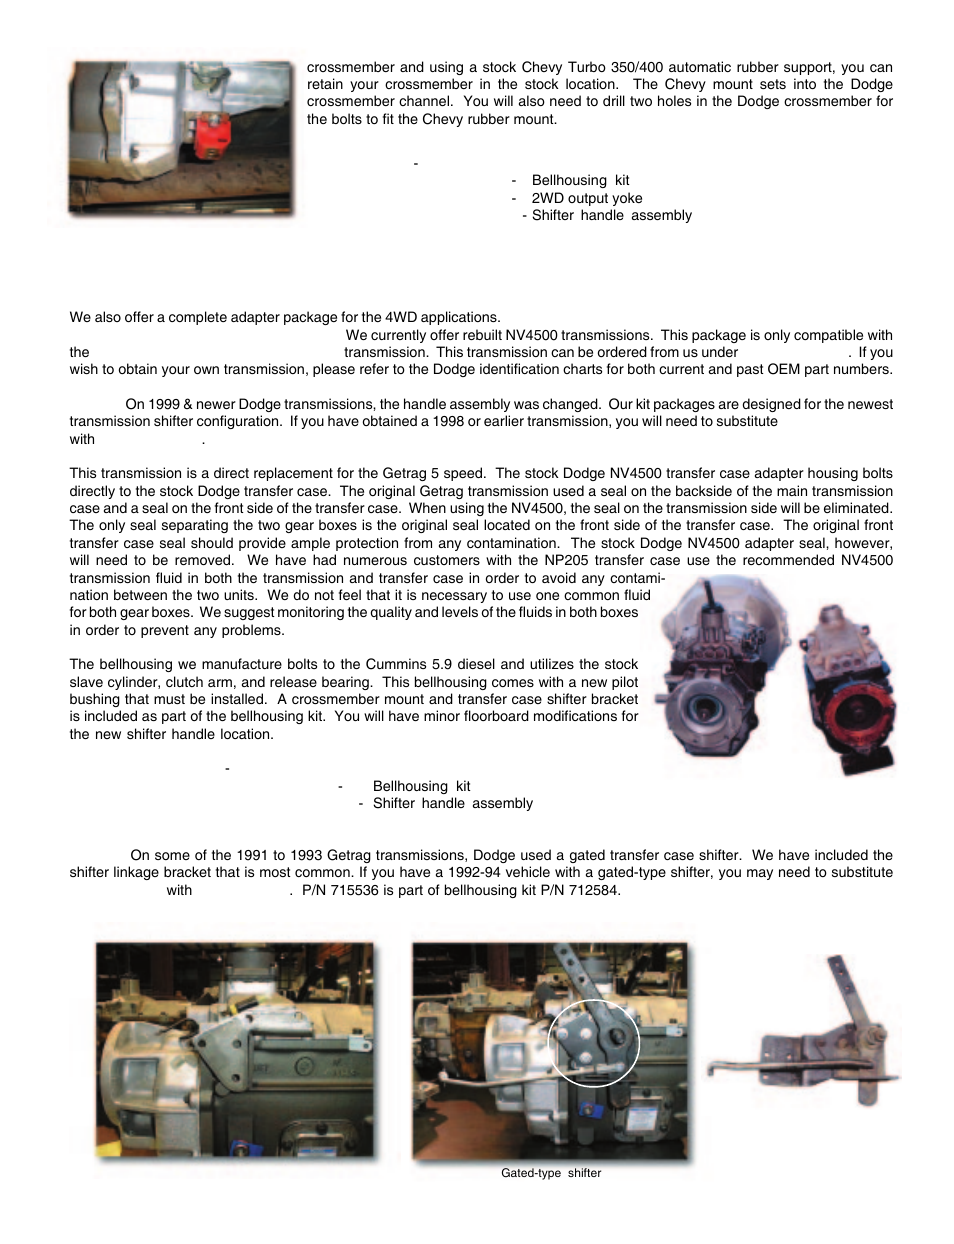 4wd dodge applications   Advance Adapters AX15 User Manual